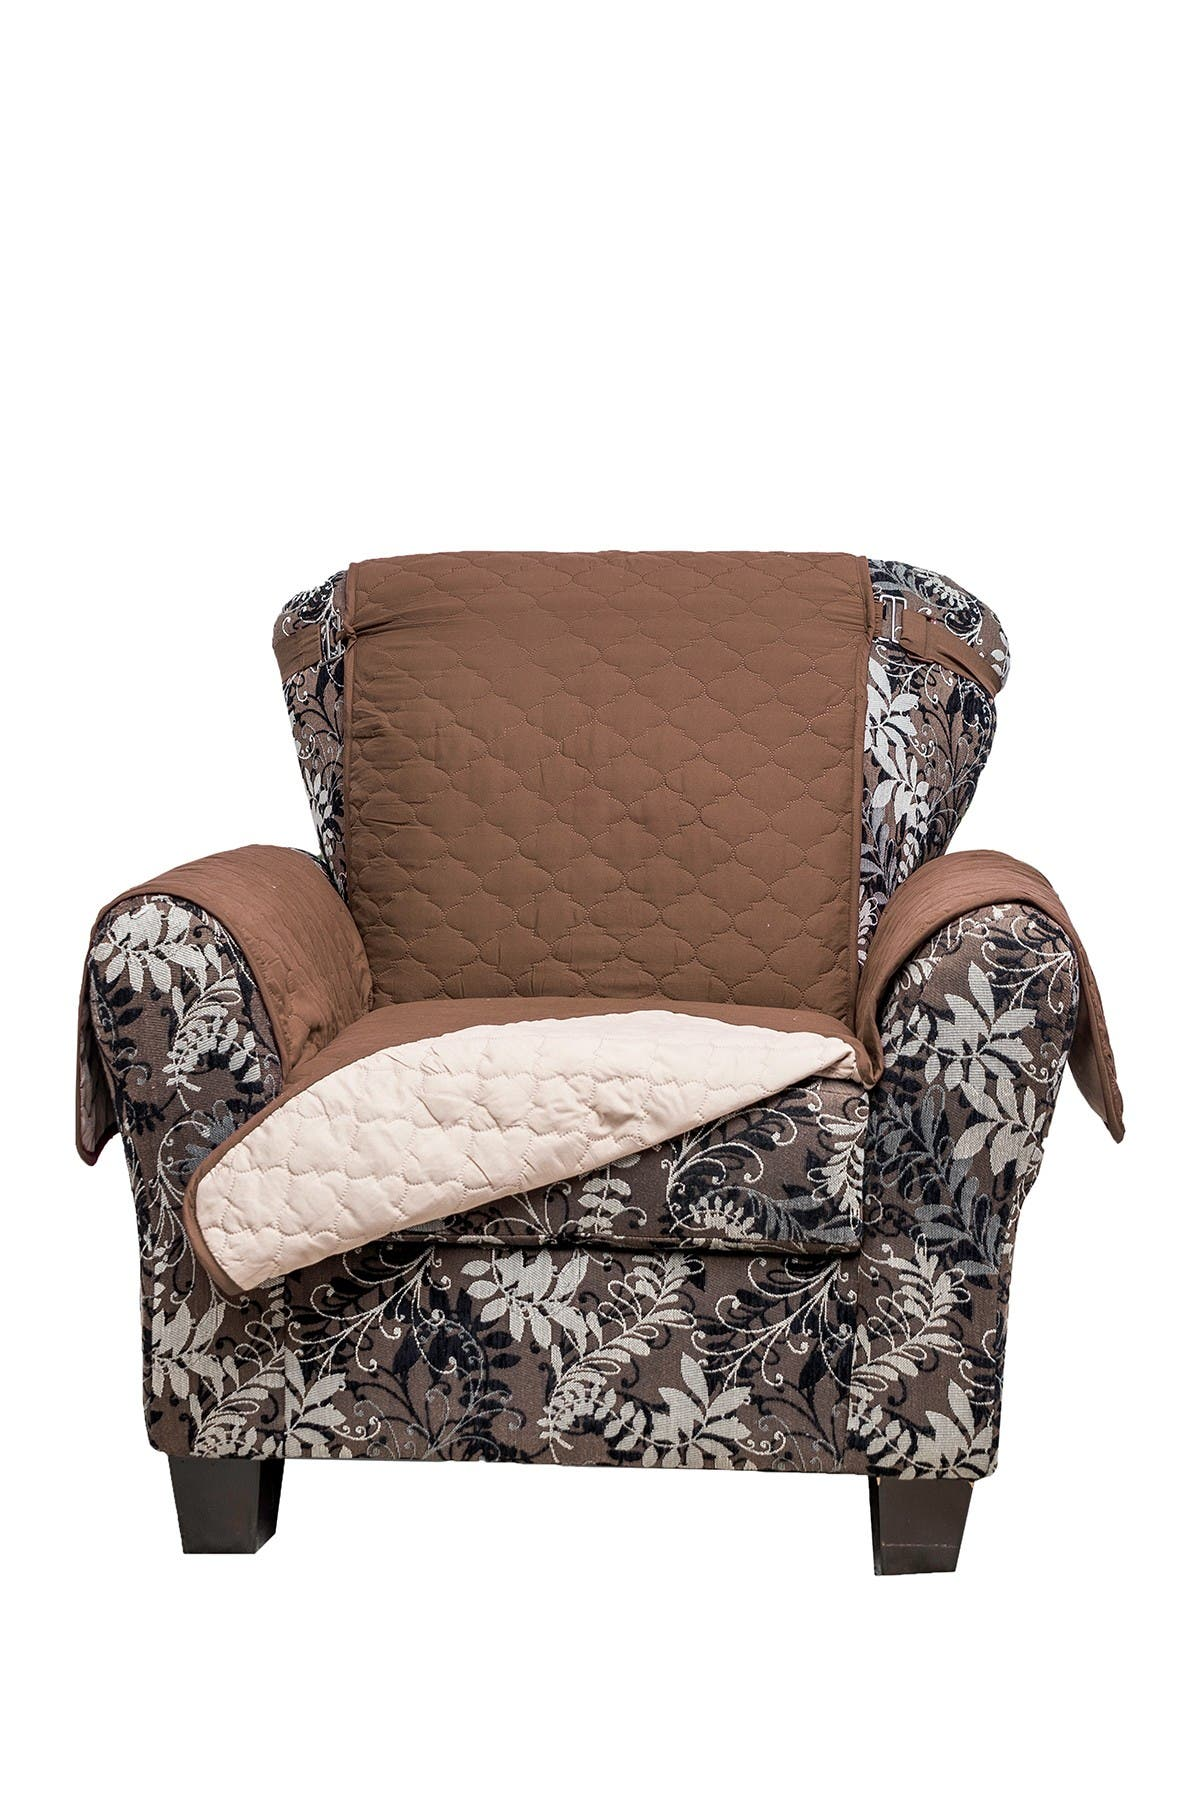 Image of Duck River Textile Chocolate/Natural Reynolda Reversible Waterproof Microfiber Chair Cover with Strap Buckles